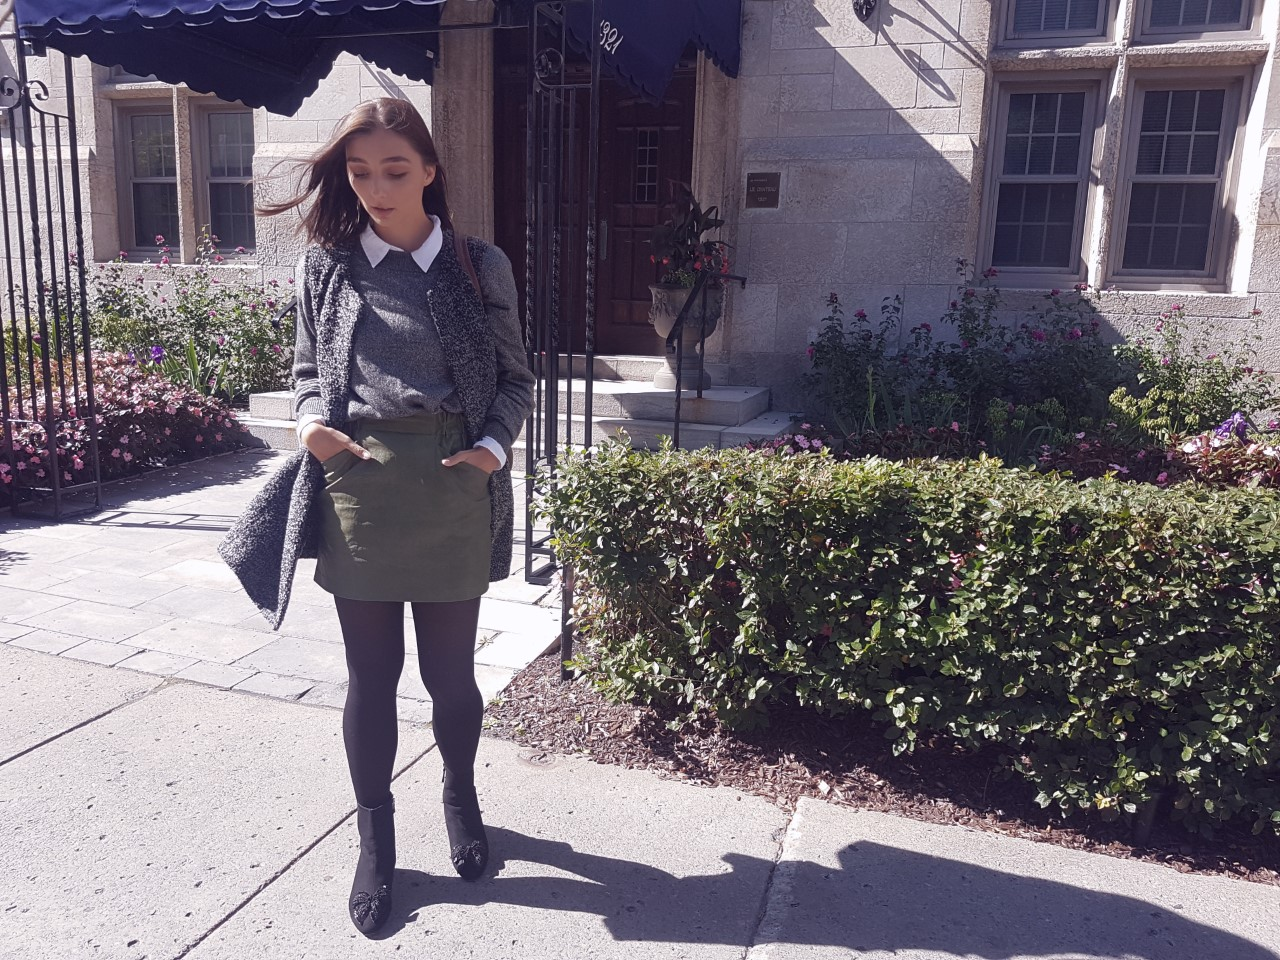 fashion, lifestyle, female friendship, squad goals, Zara, H&M, fall fashion, fall style, outfit of the day, ootd, Montreal, Montreal fashion, Canadian blogger